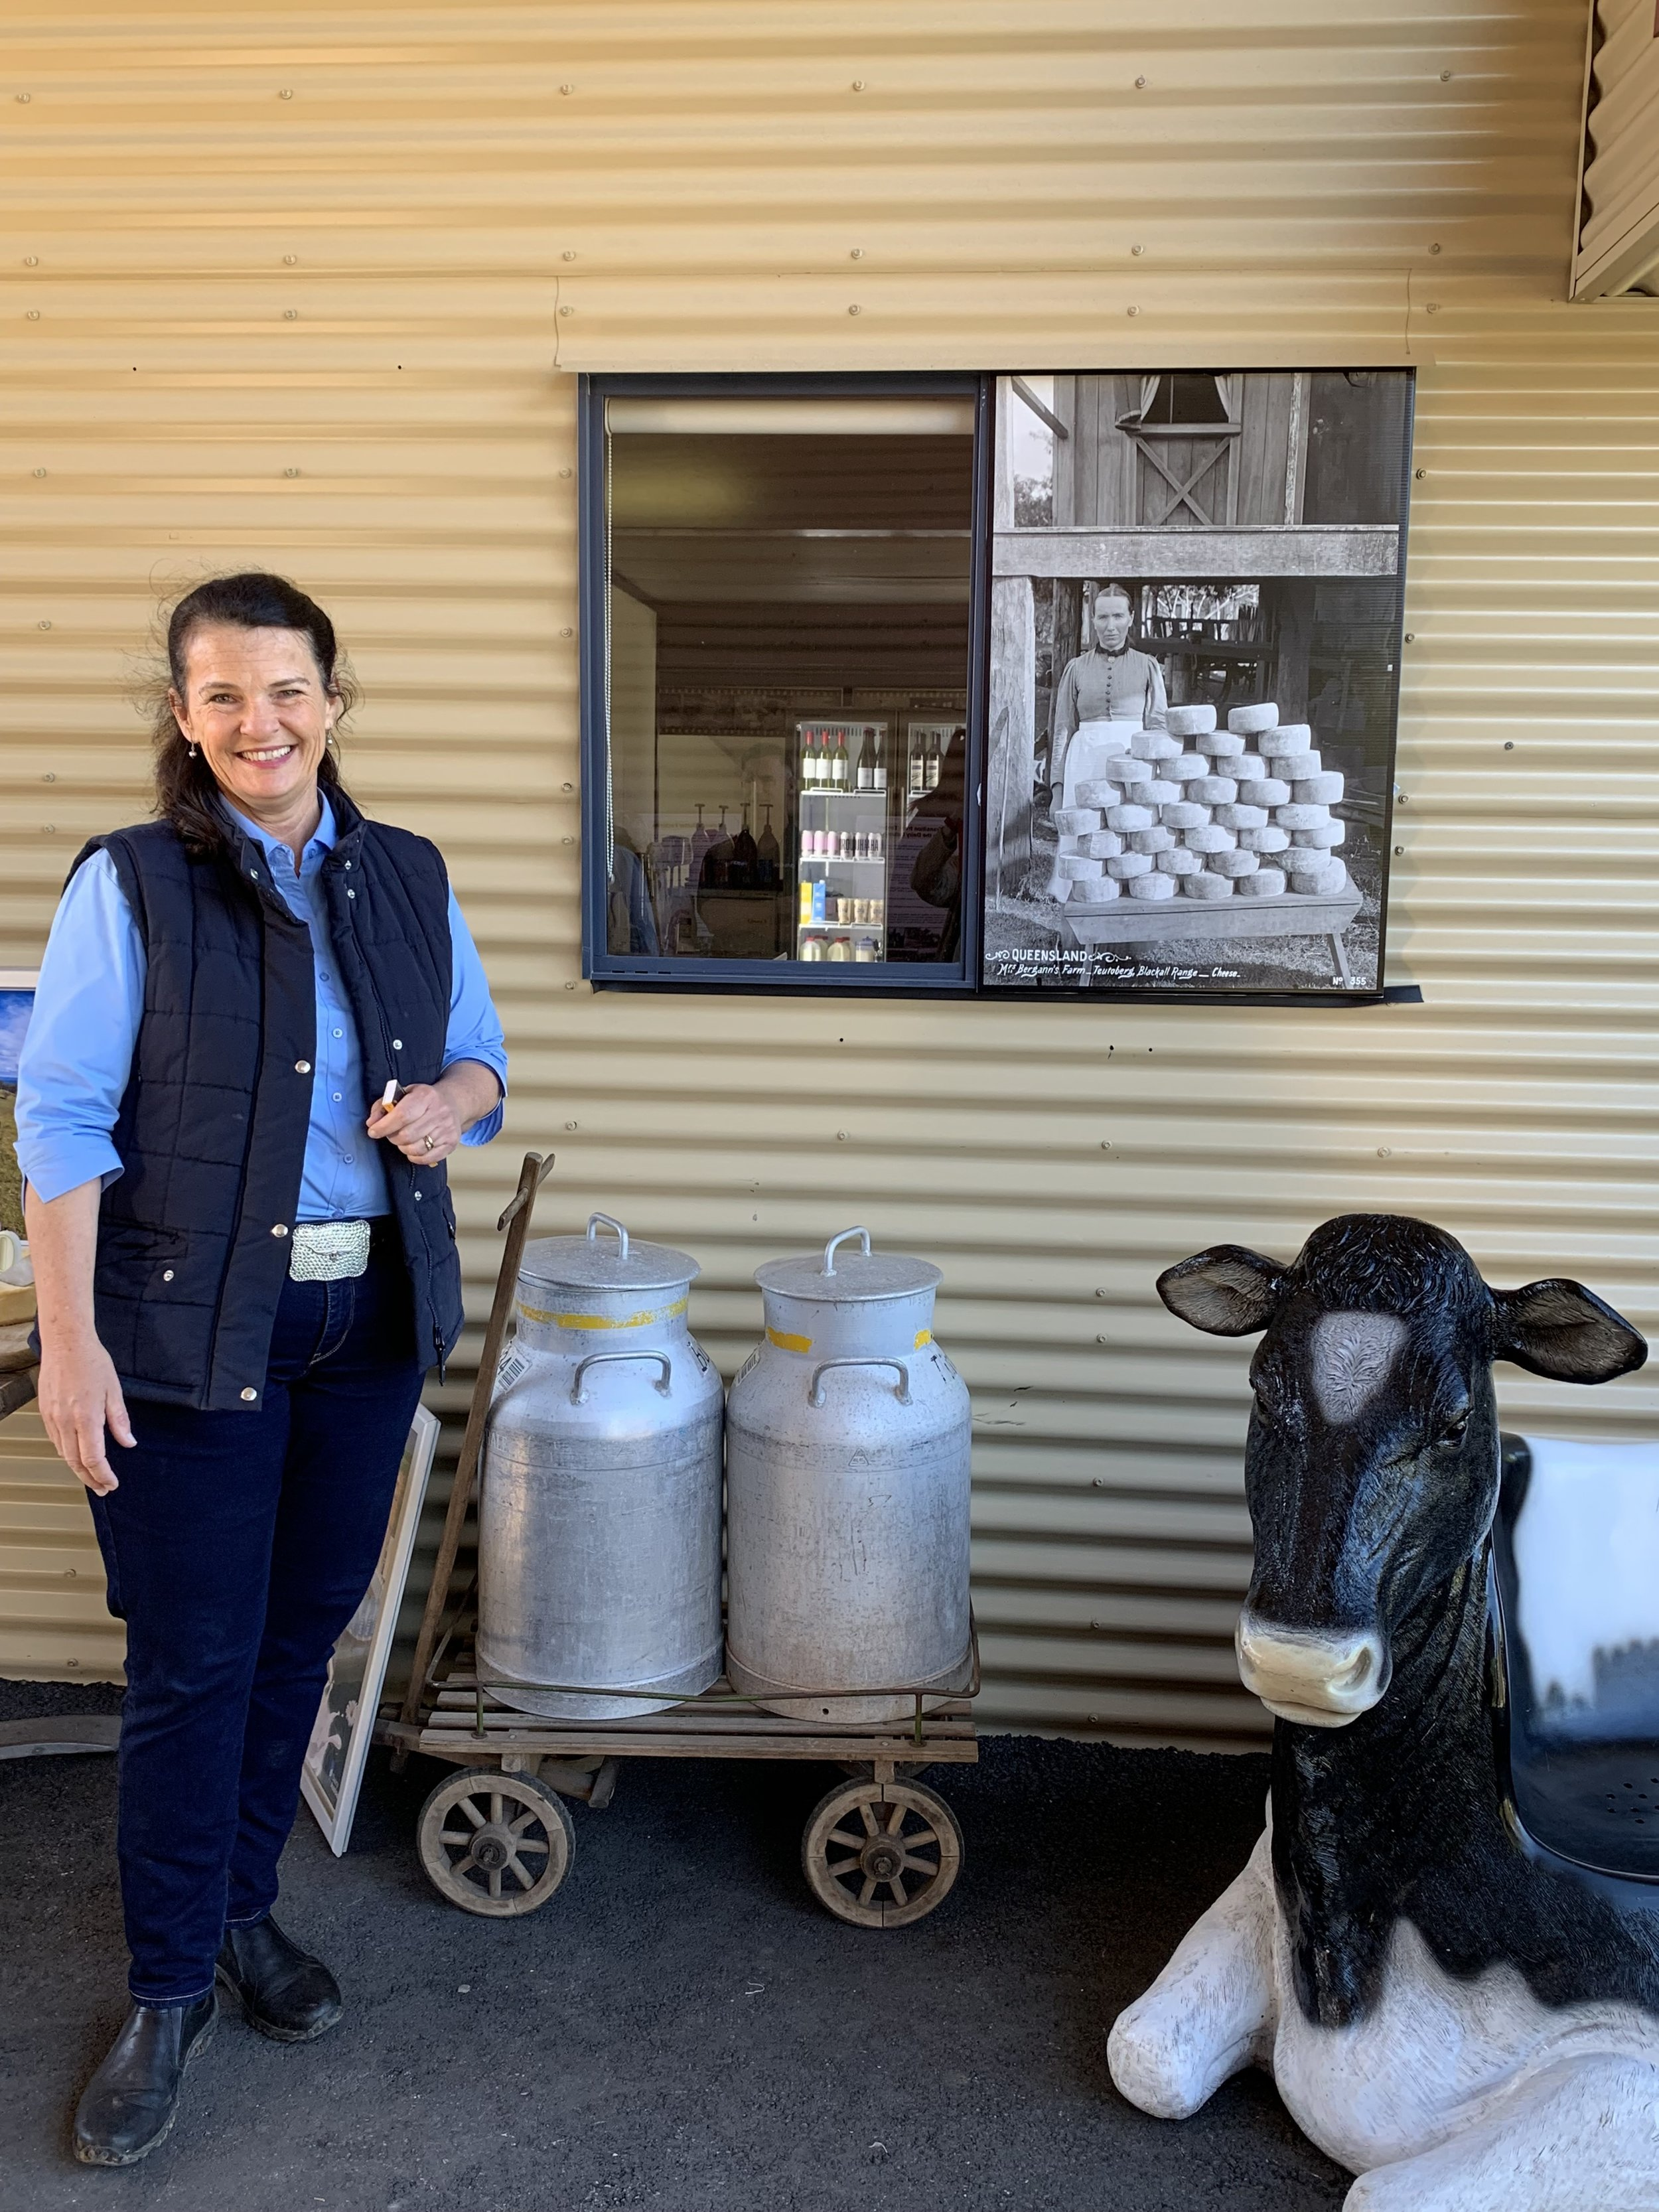 Generations a part. Sara Bucher of Maleny Cheese next to 120 yo photo of Mrs Bergman of Blackall Range Cheese